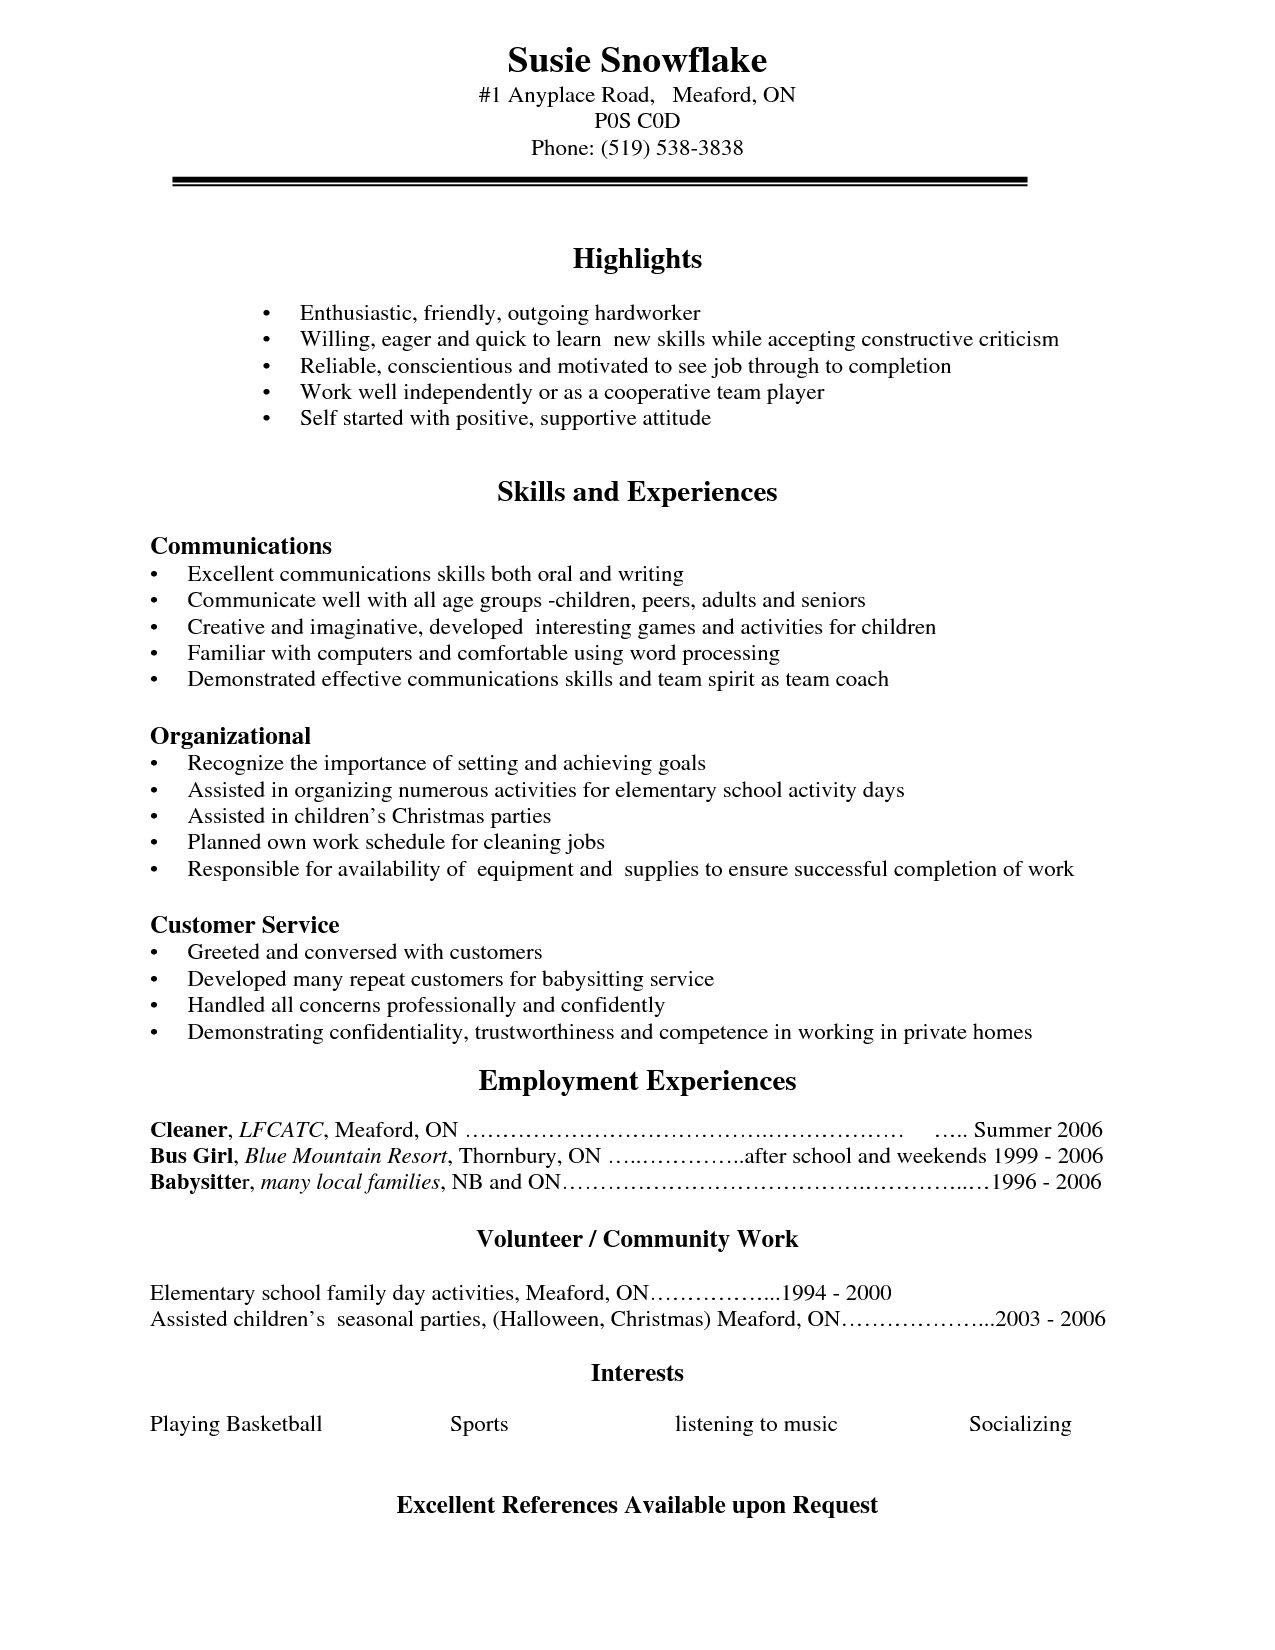 resume examples for high school students template job student summary chiropractor nandos Resume High School Student Resume Summary